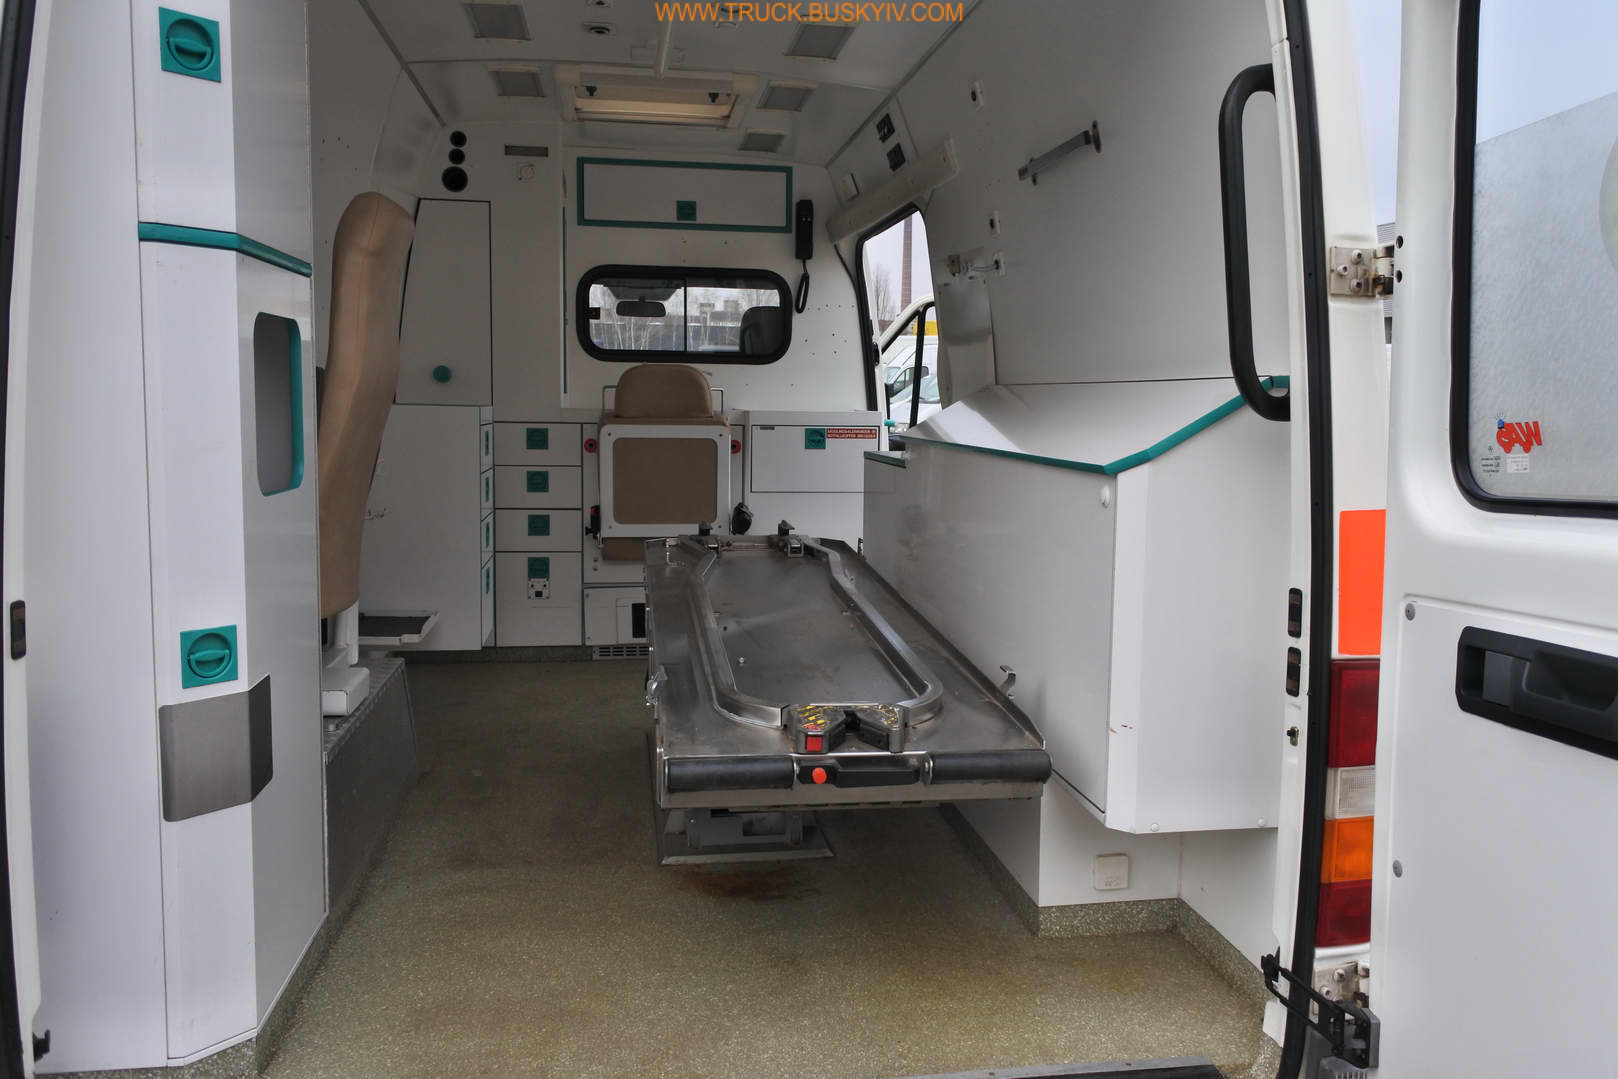 2002_mb_spr316_ambulance_35